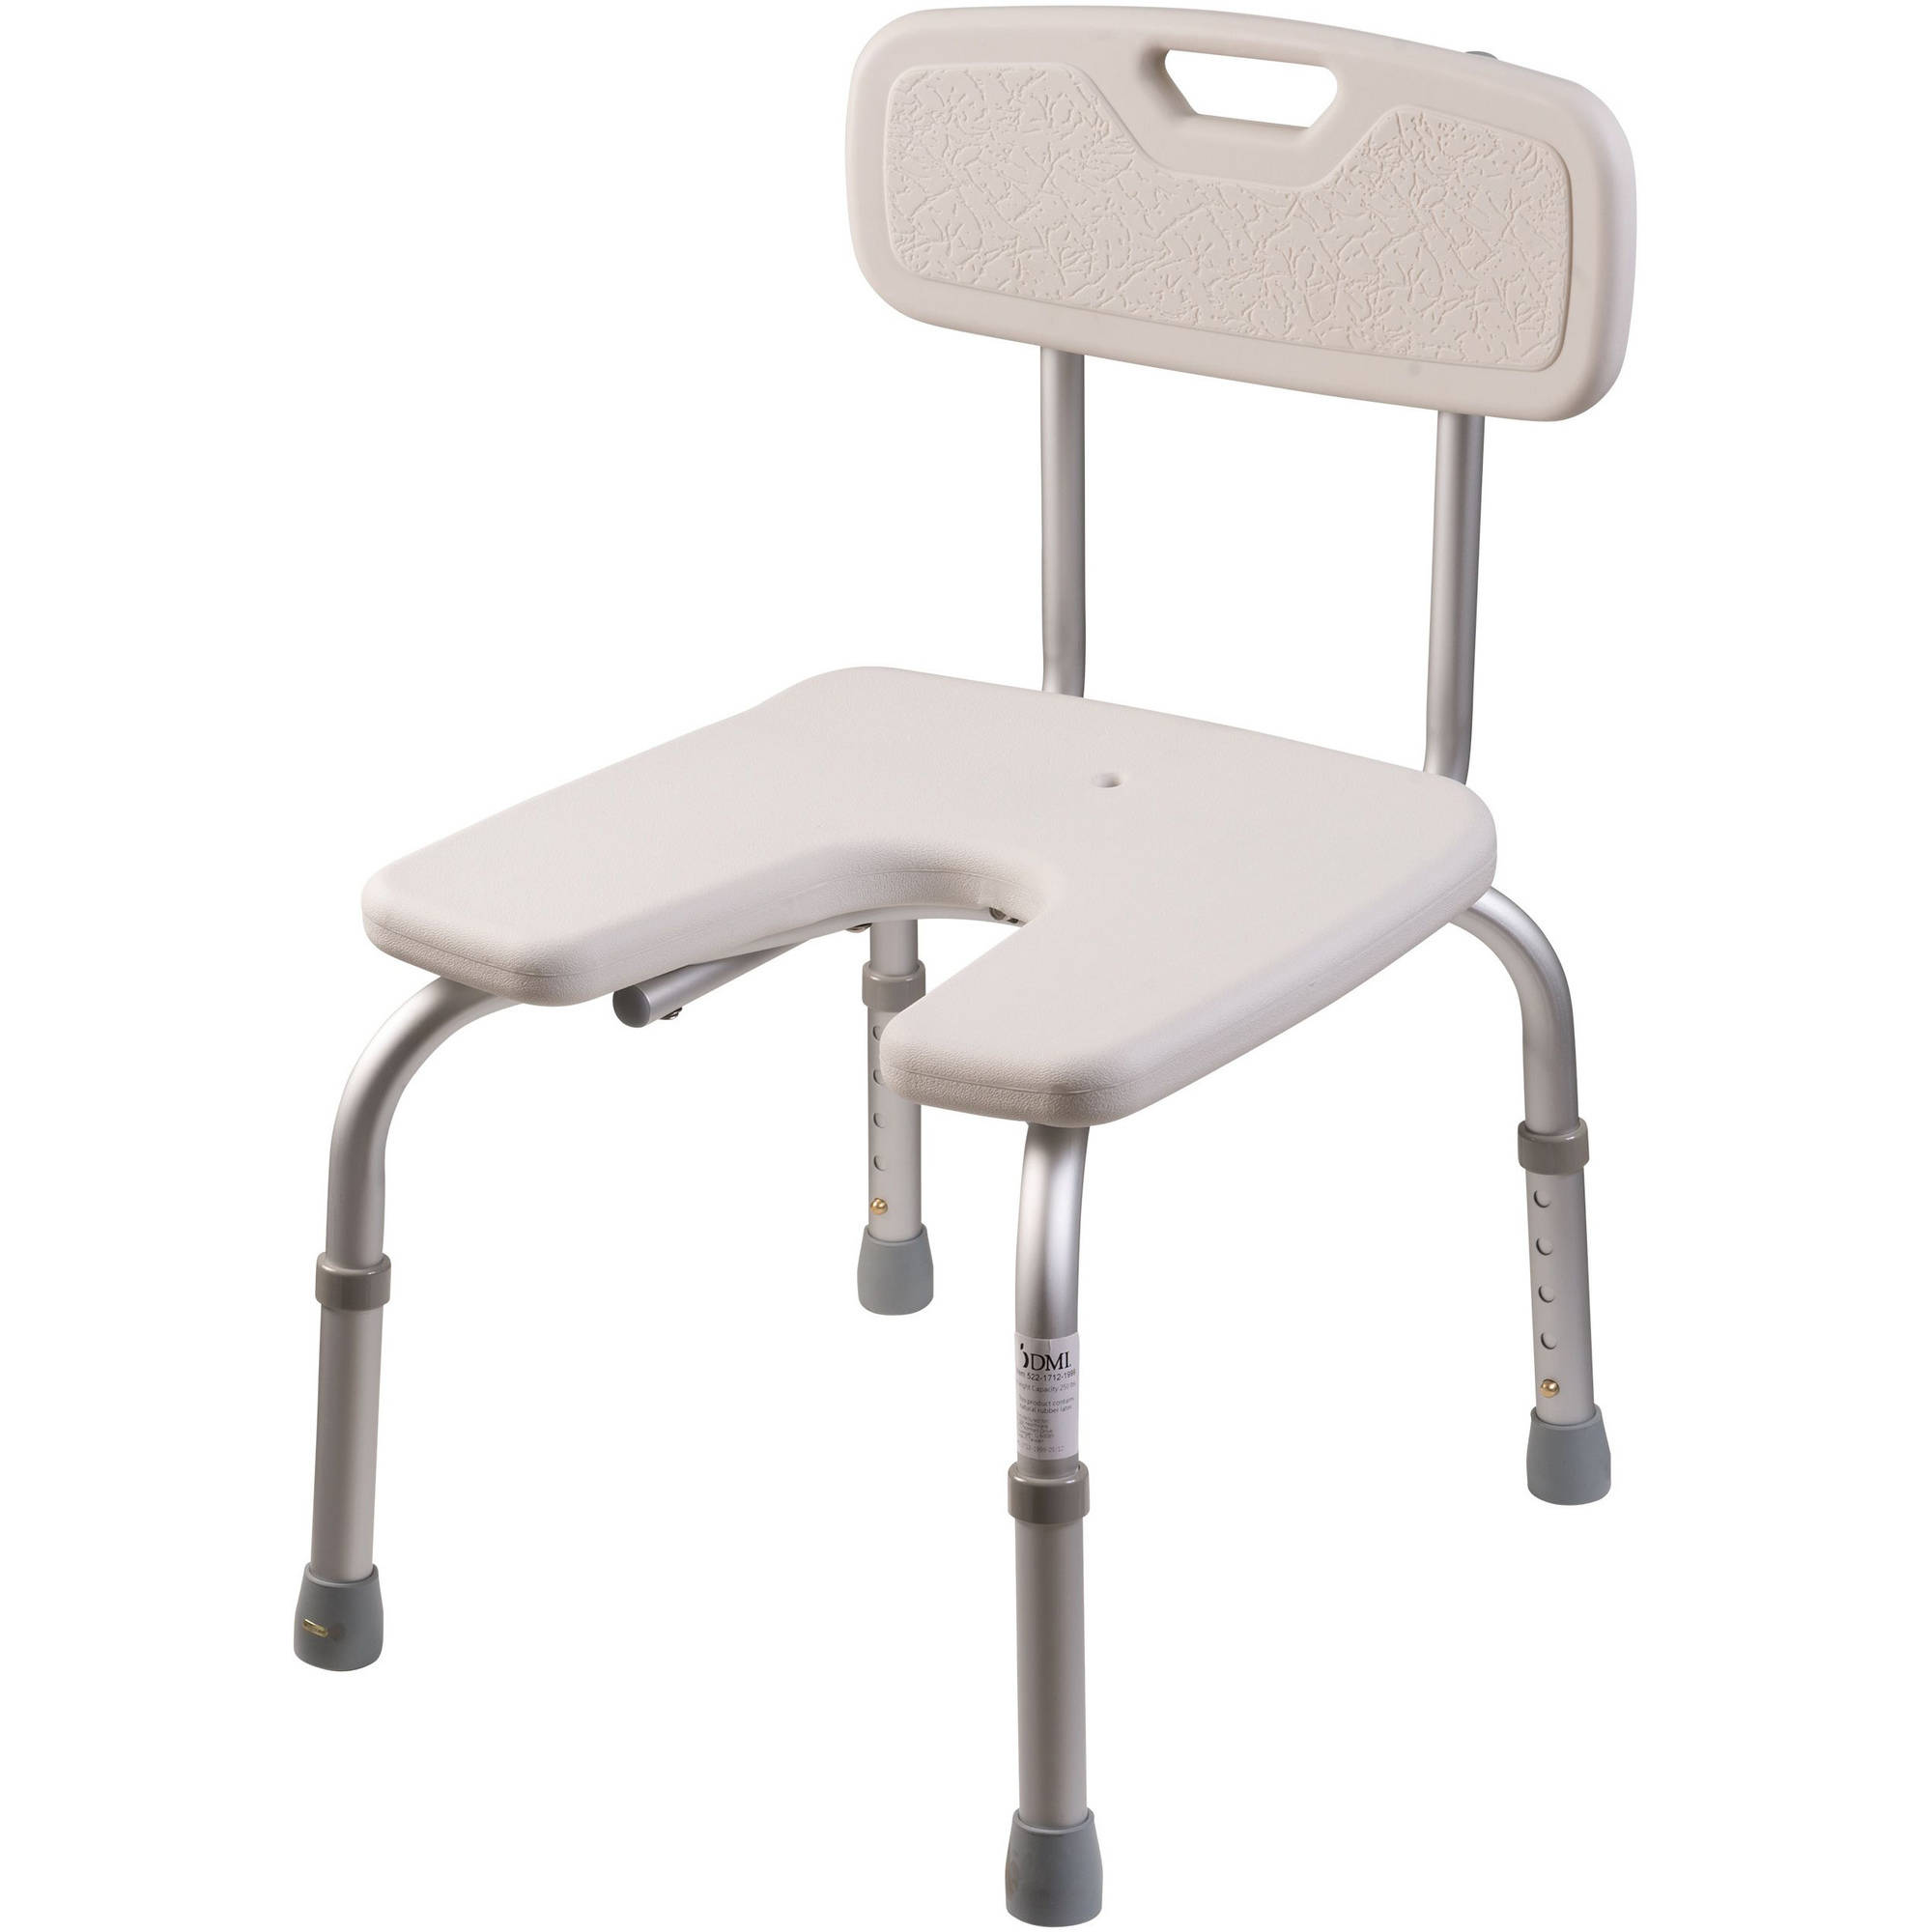 dmi u-shape bath and shower chair bench with removable back, white